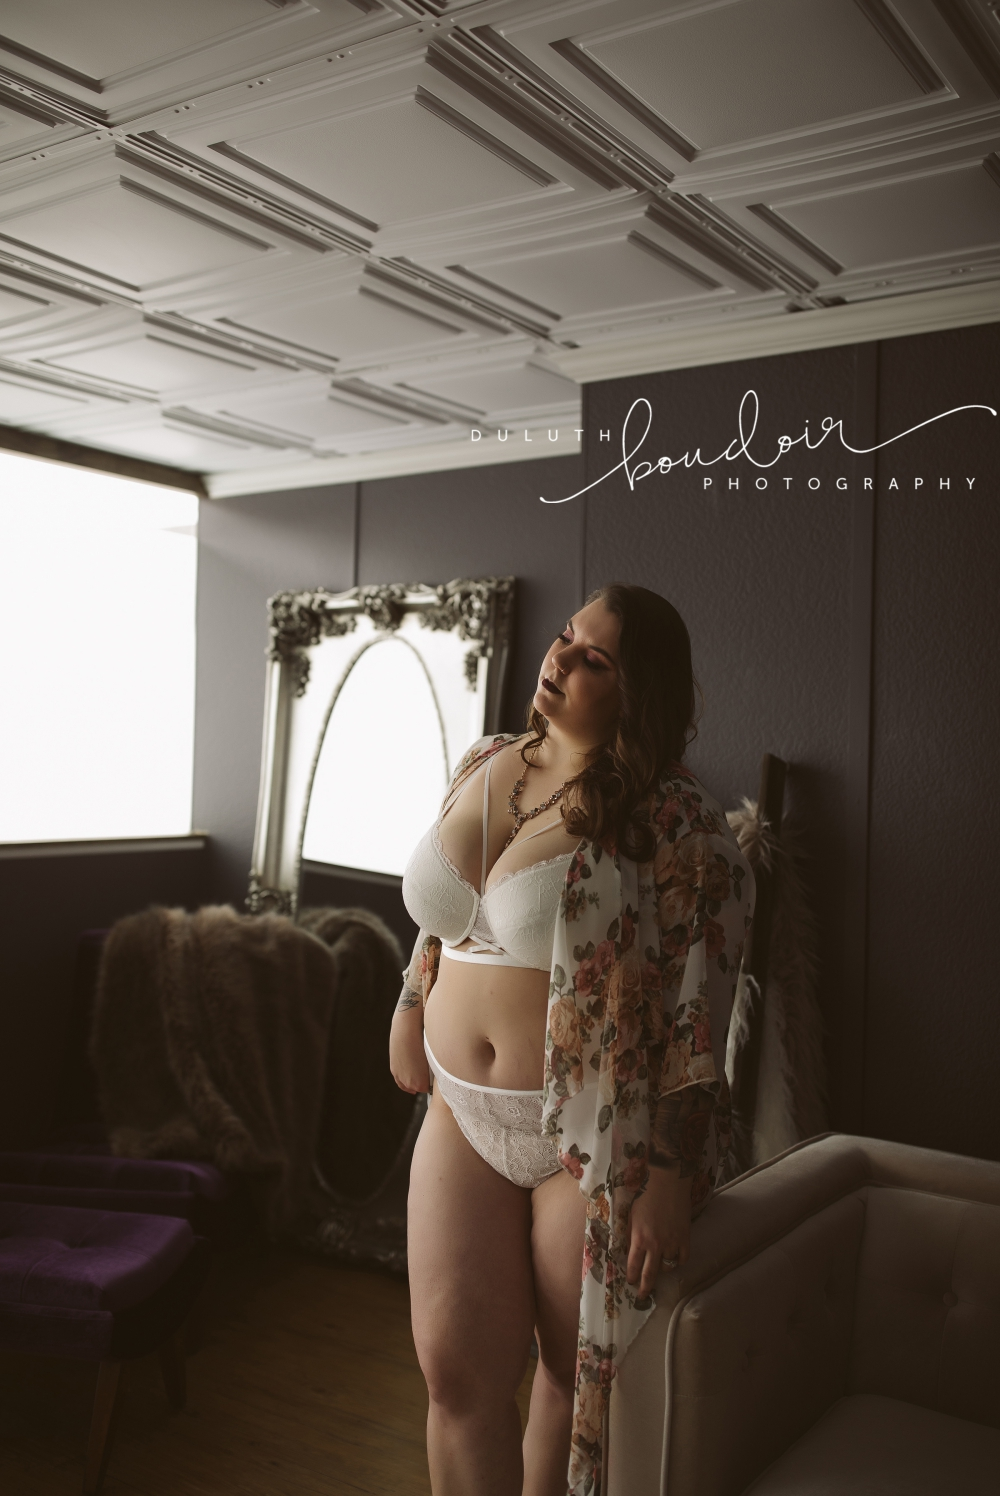 Lauren Session at Duluth Boudoir Photography by Mad Chicken Studio #duluthboudoirphotography #madchickenstudio #madchickenstudioboudoir #duluthboudoir